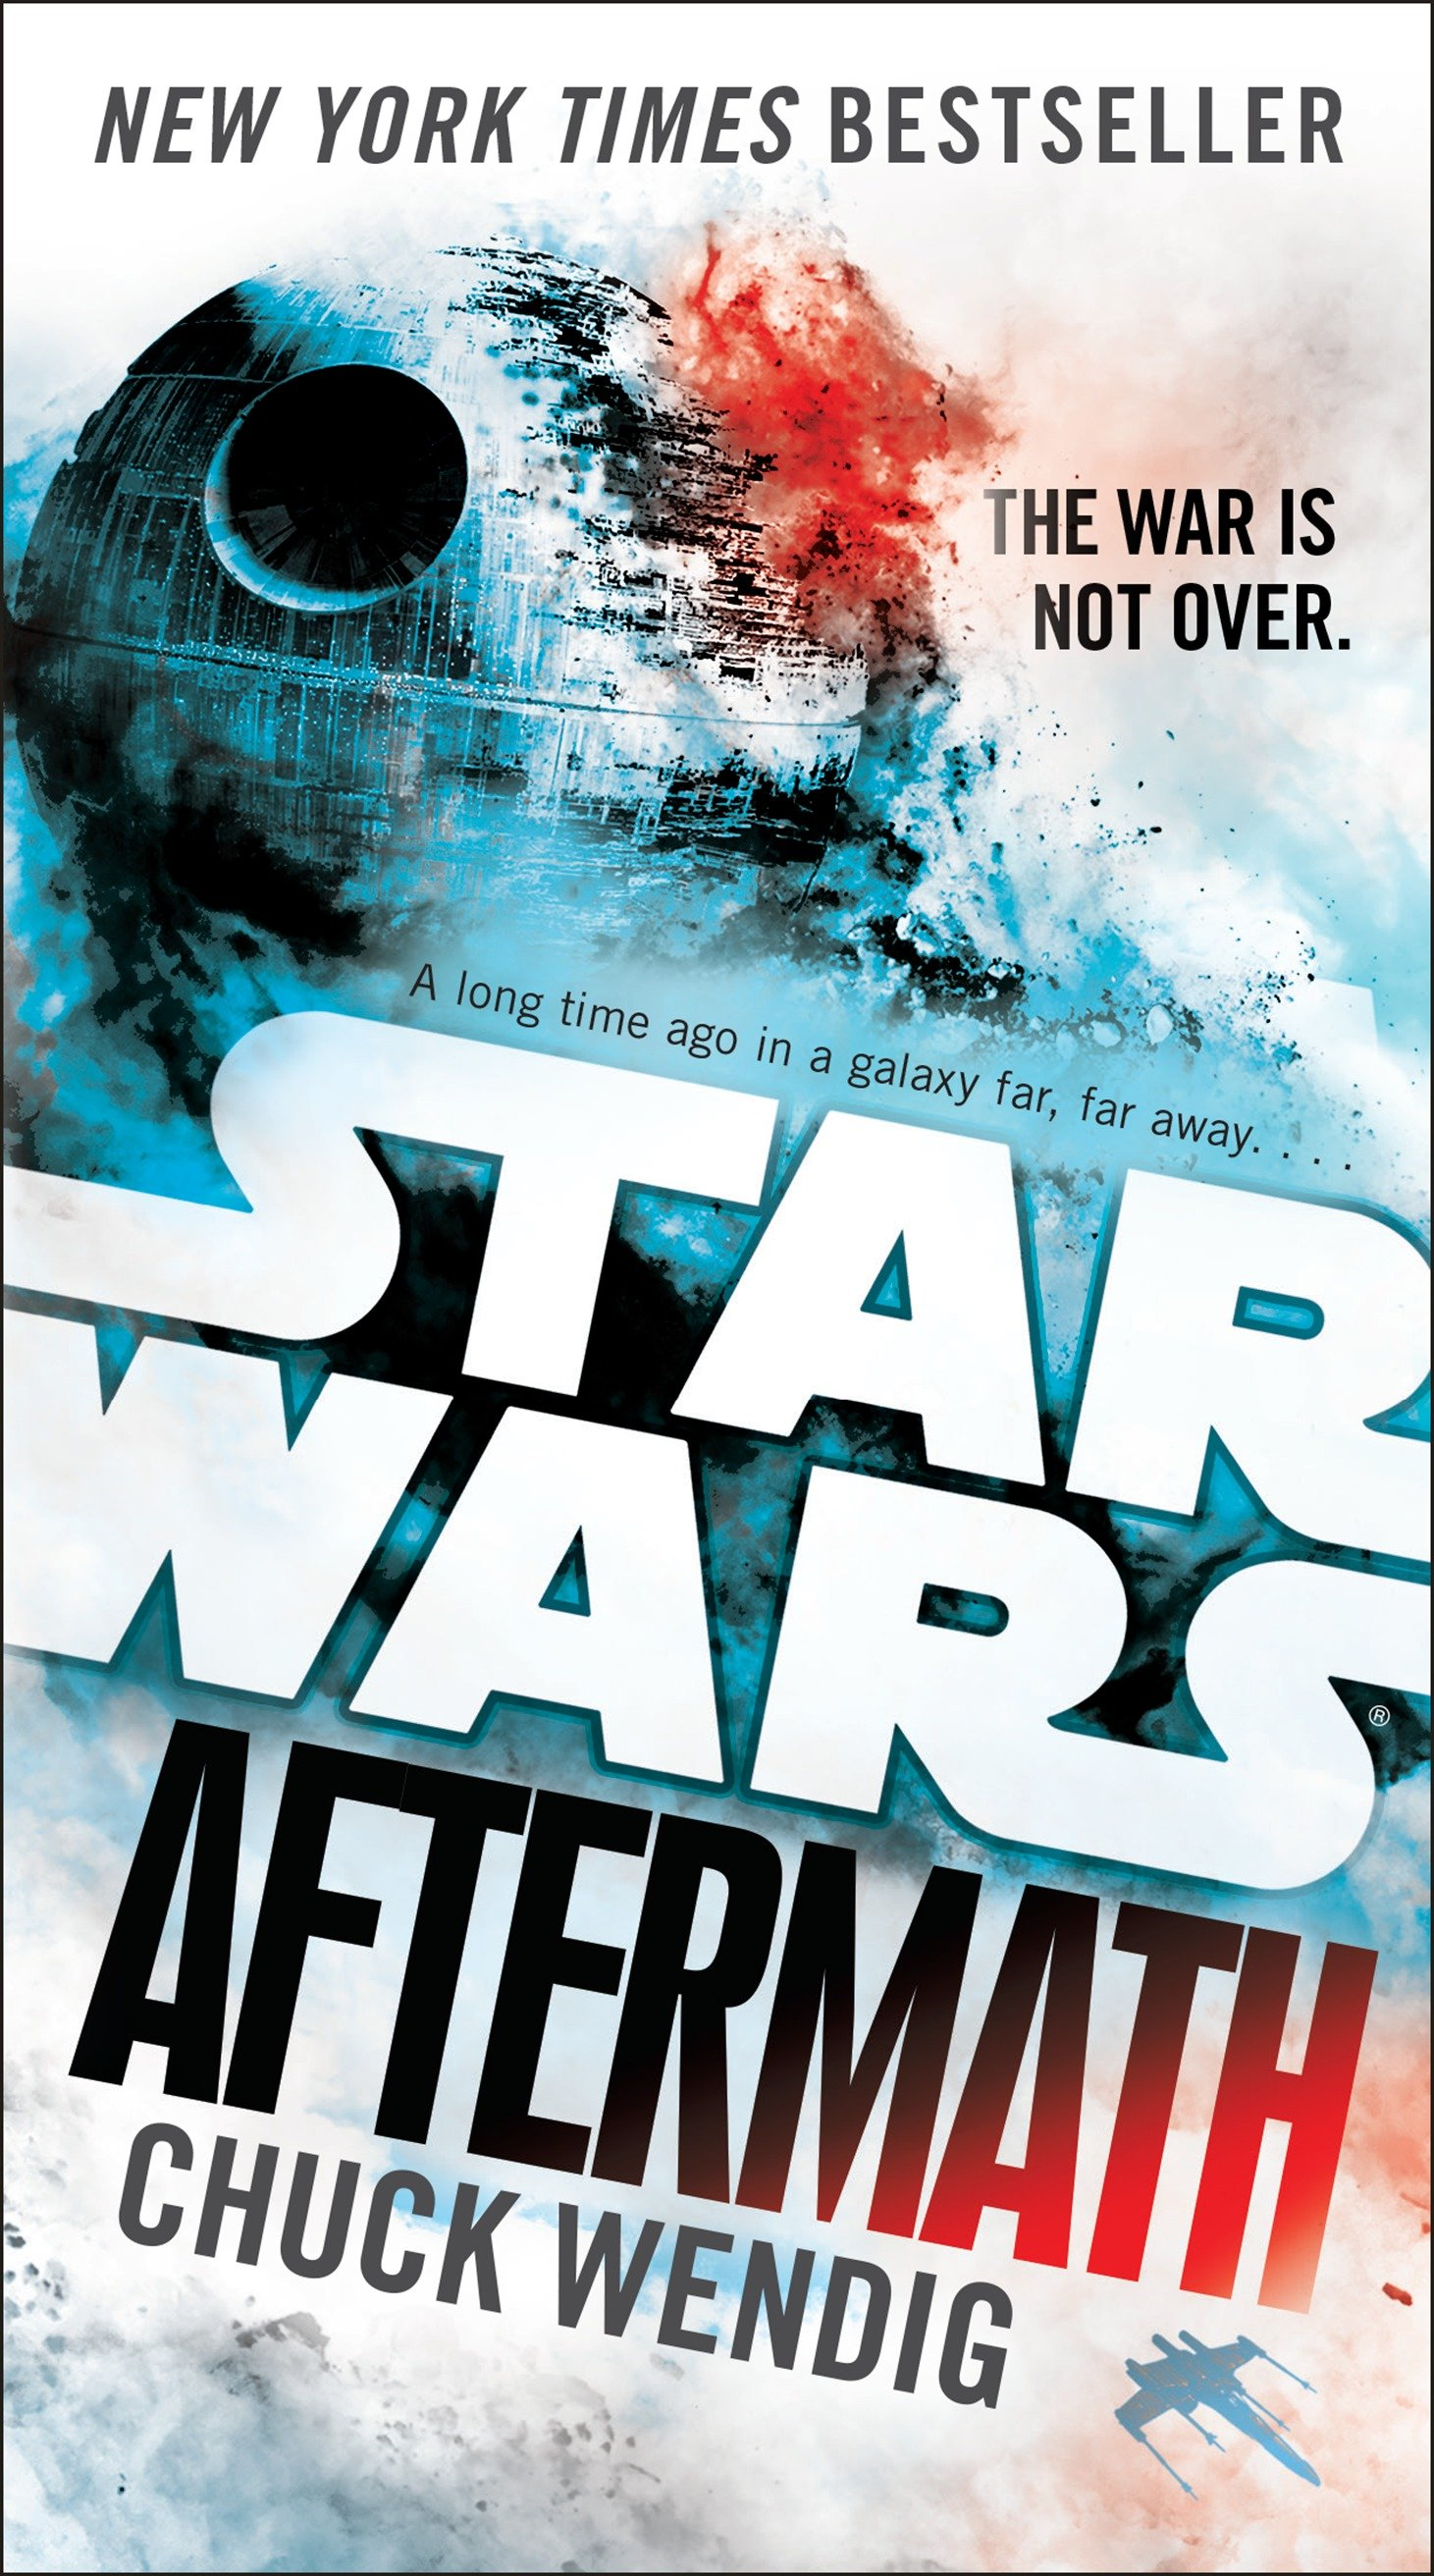 Star wars, aftermath